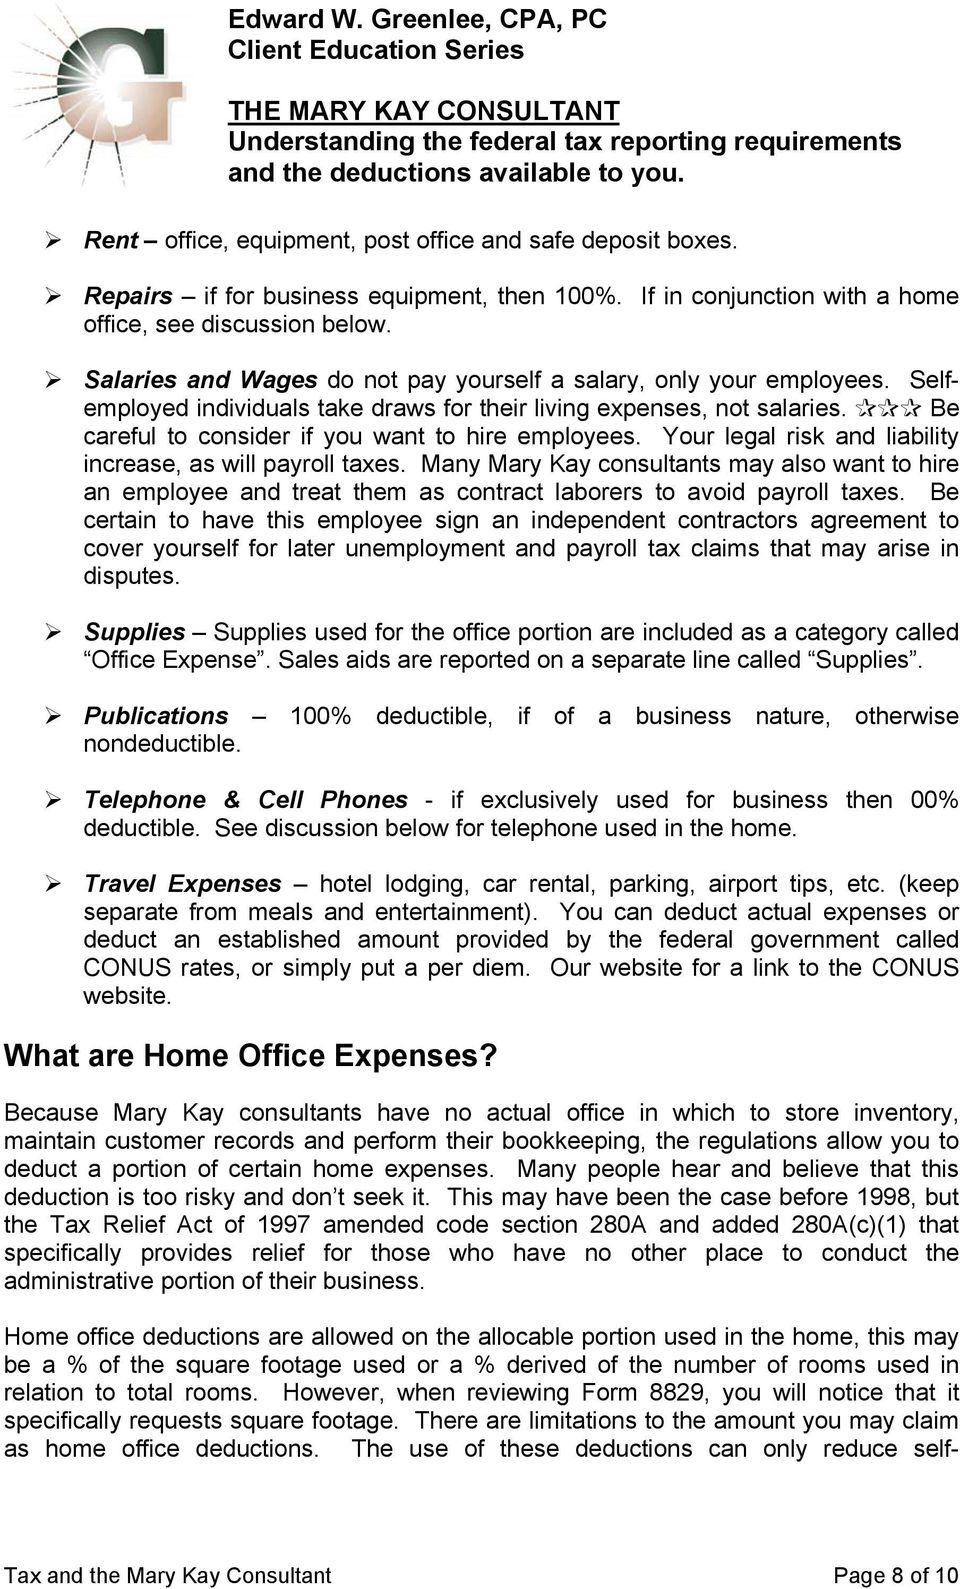 What Is My Tax Reporting Status As A Mary Kay Consultant Pdf